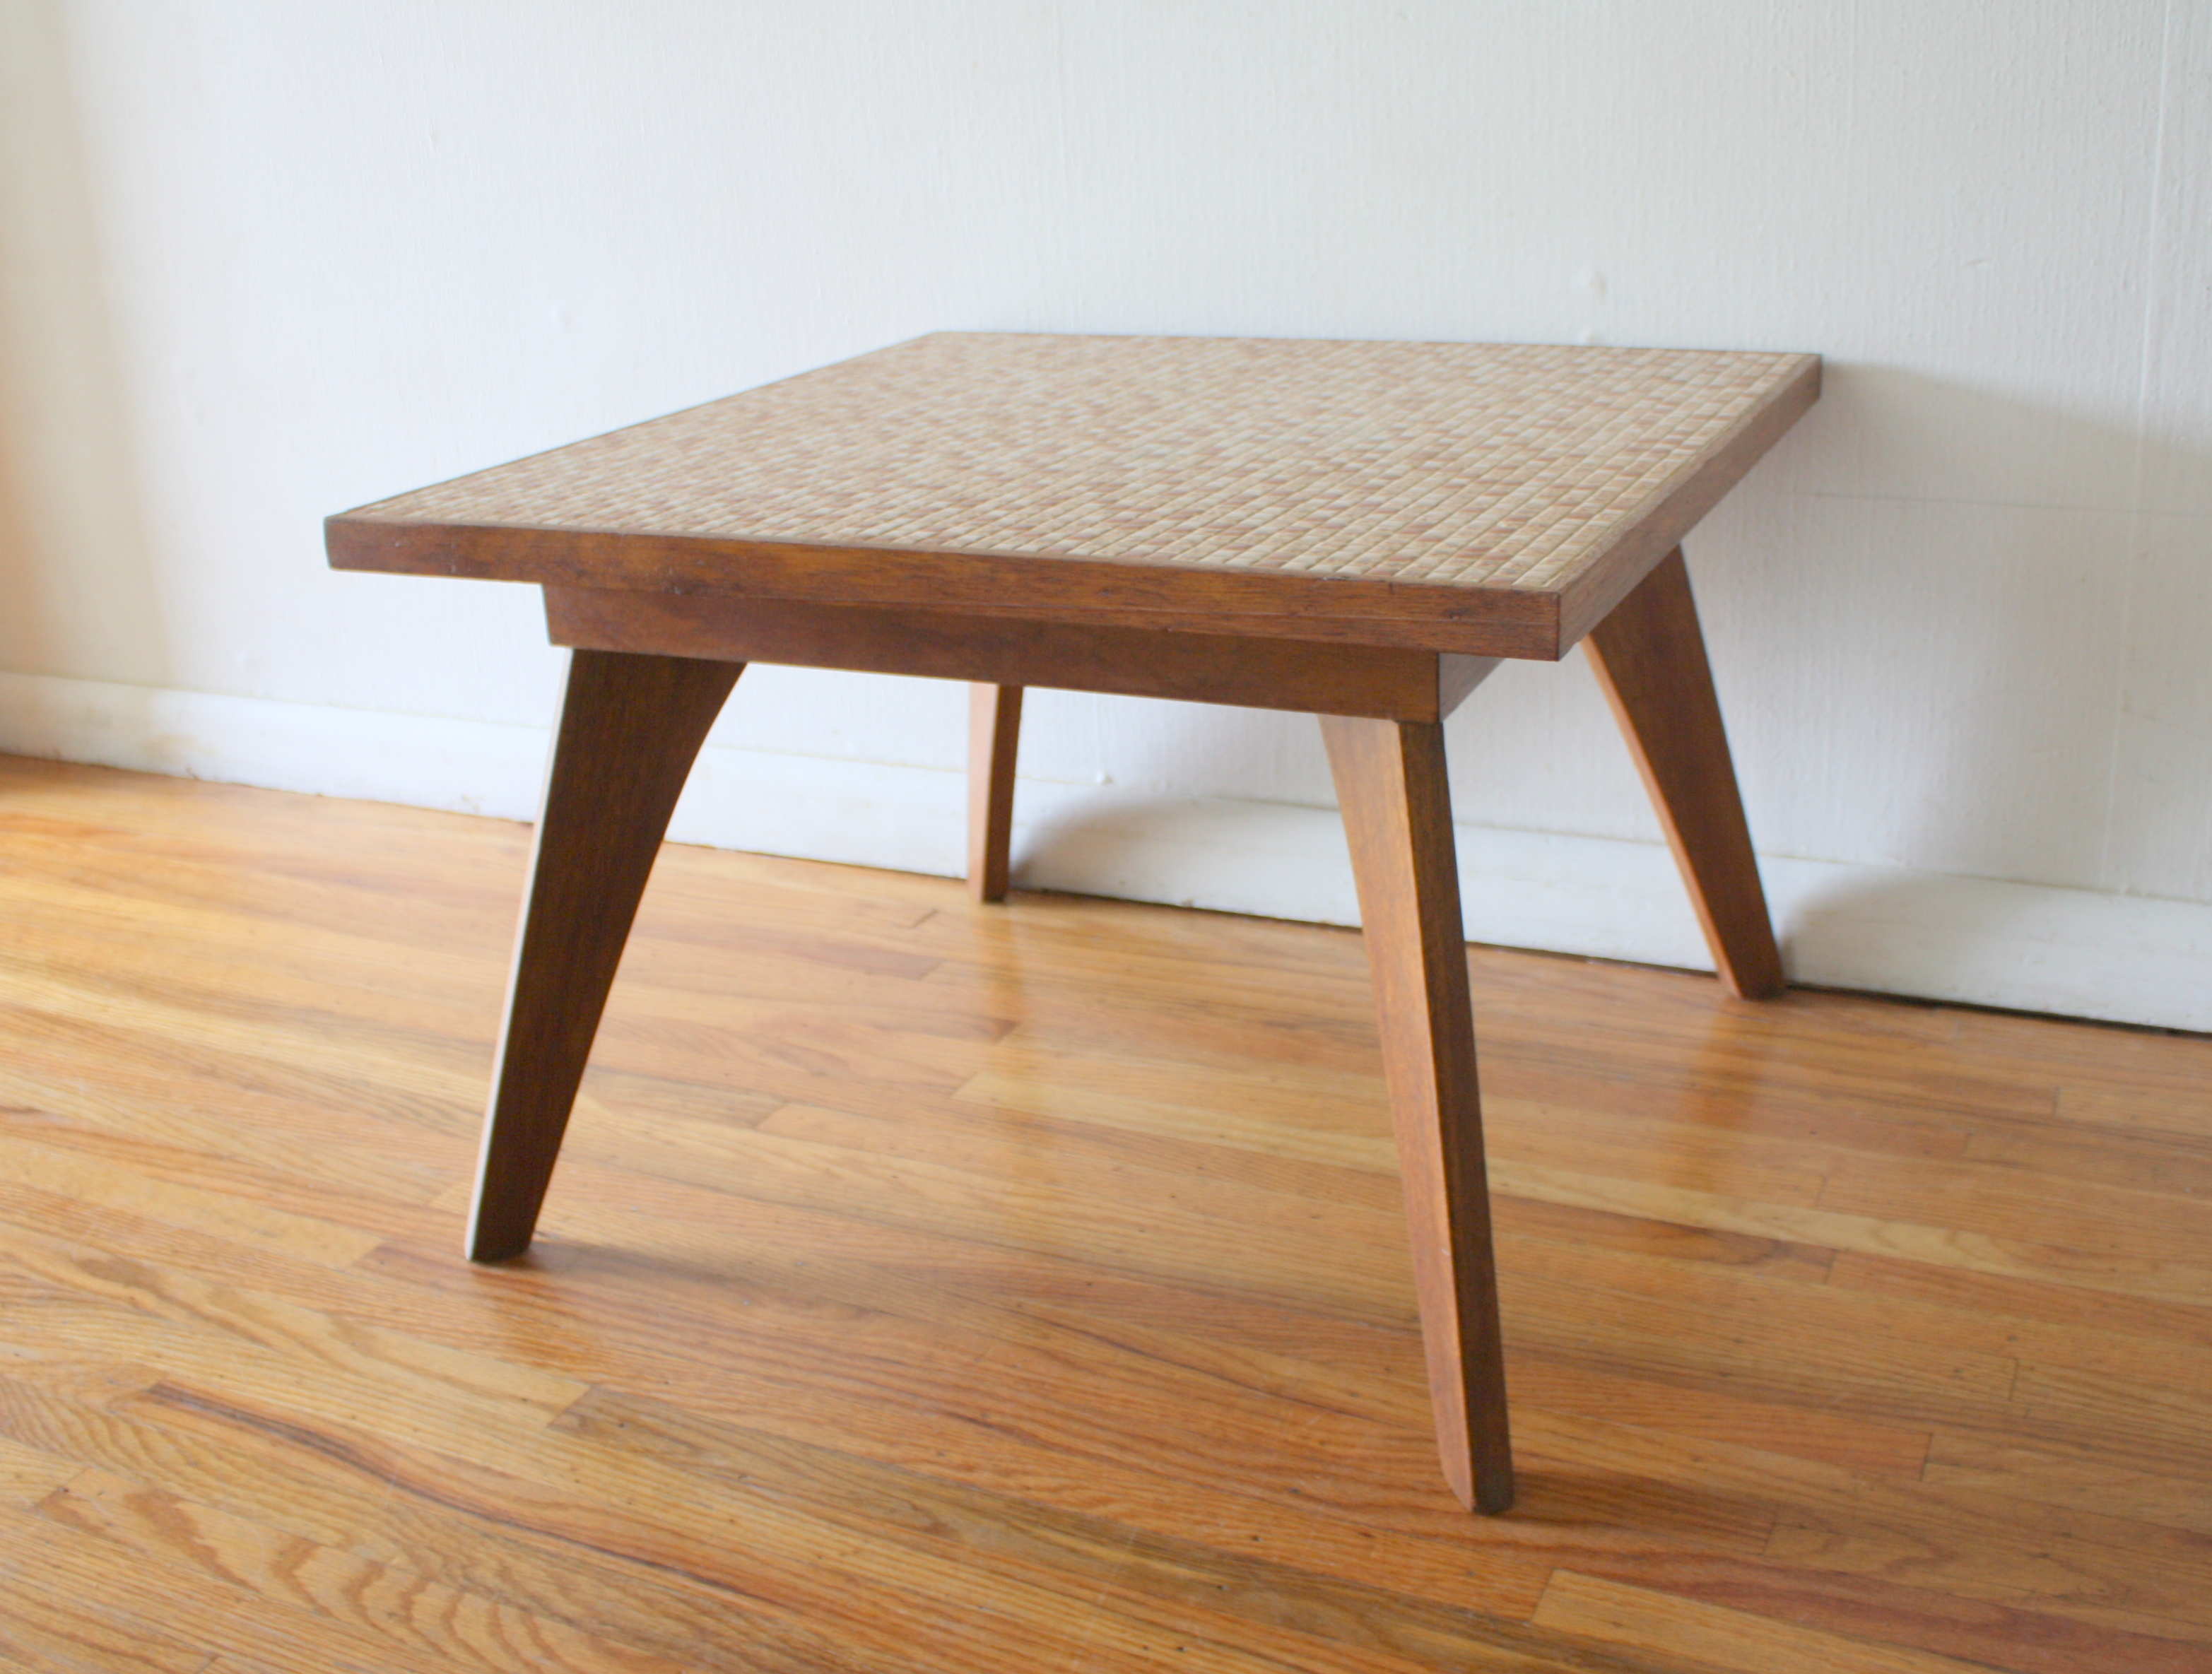 mcm square tile table 1